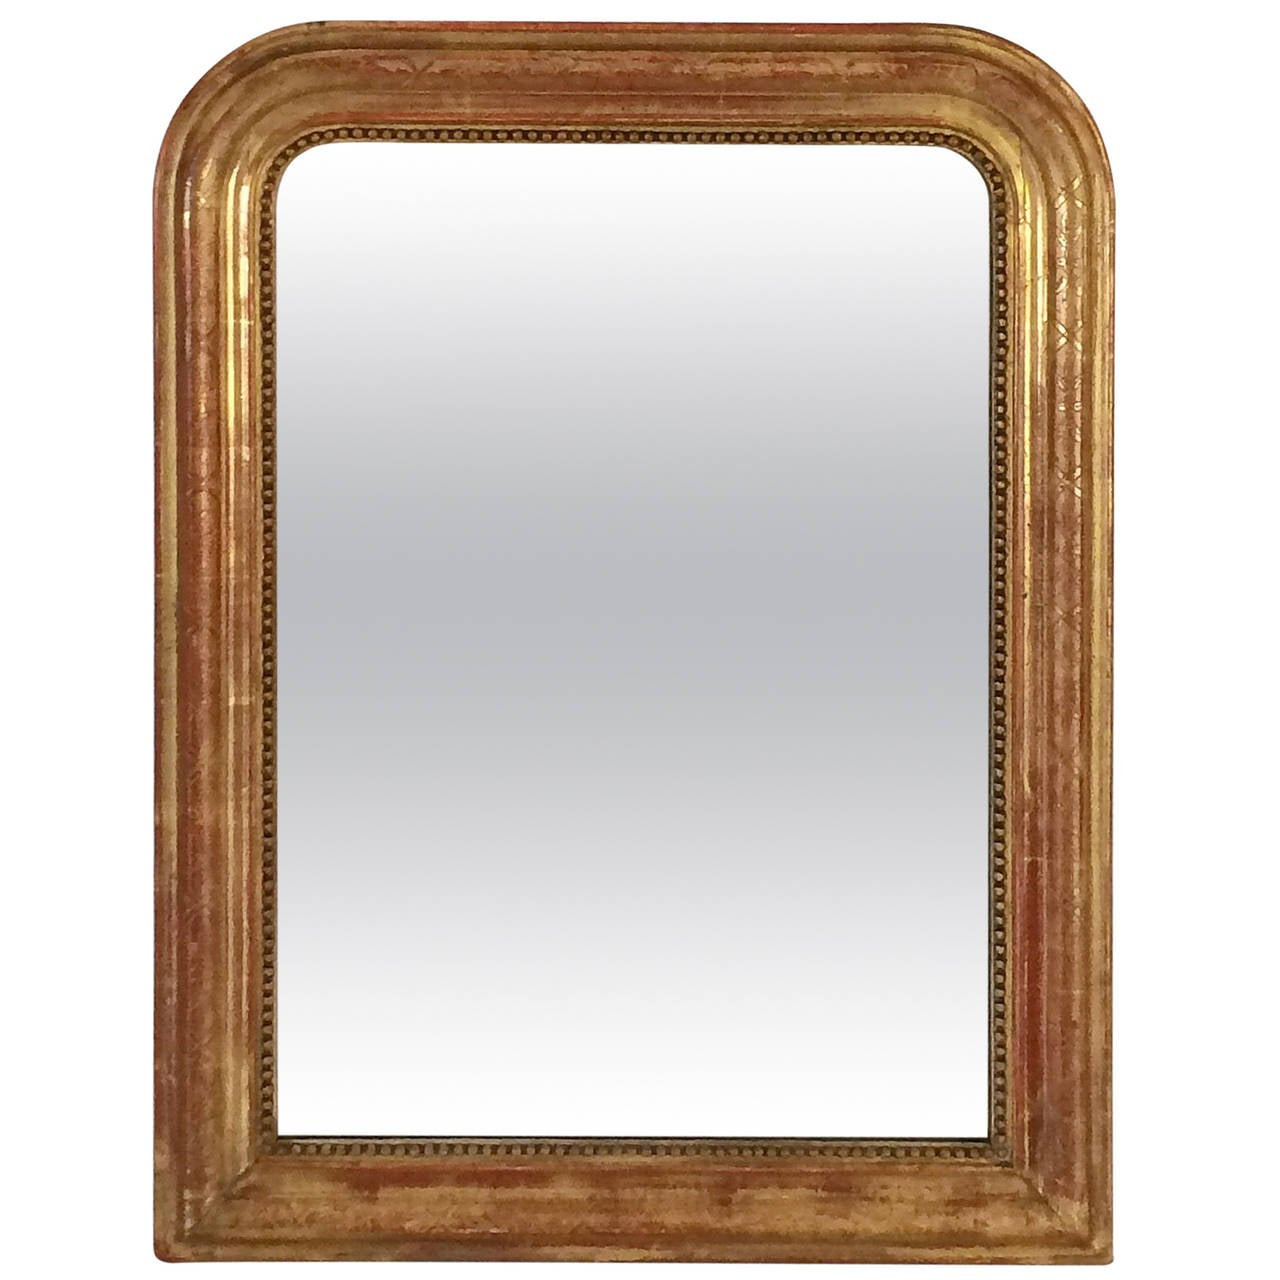 Louis philippe gilt mirror at 1stdibs for What is a gilt mirror